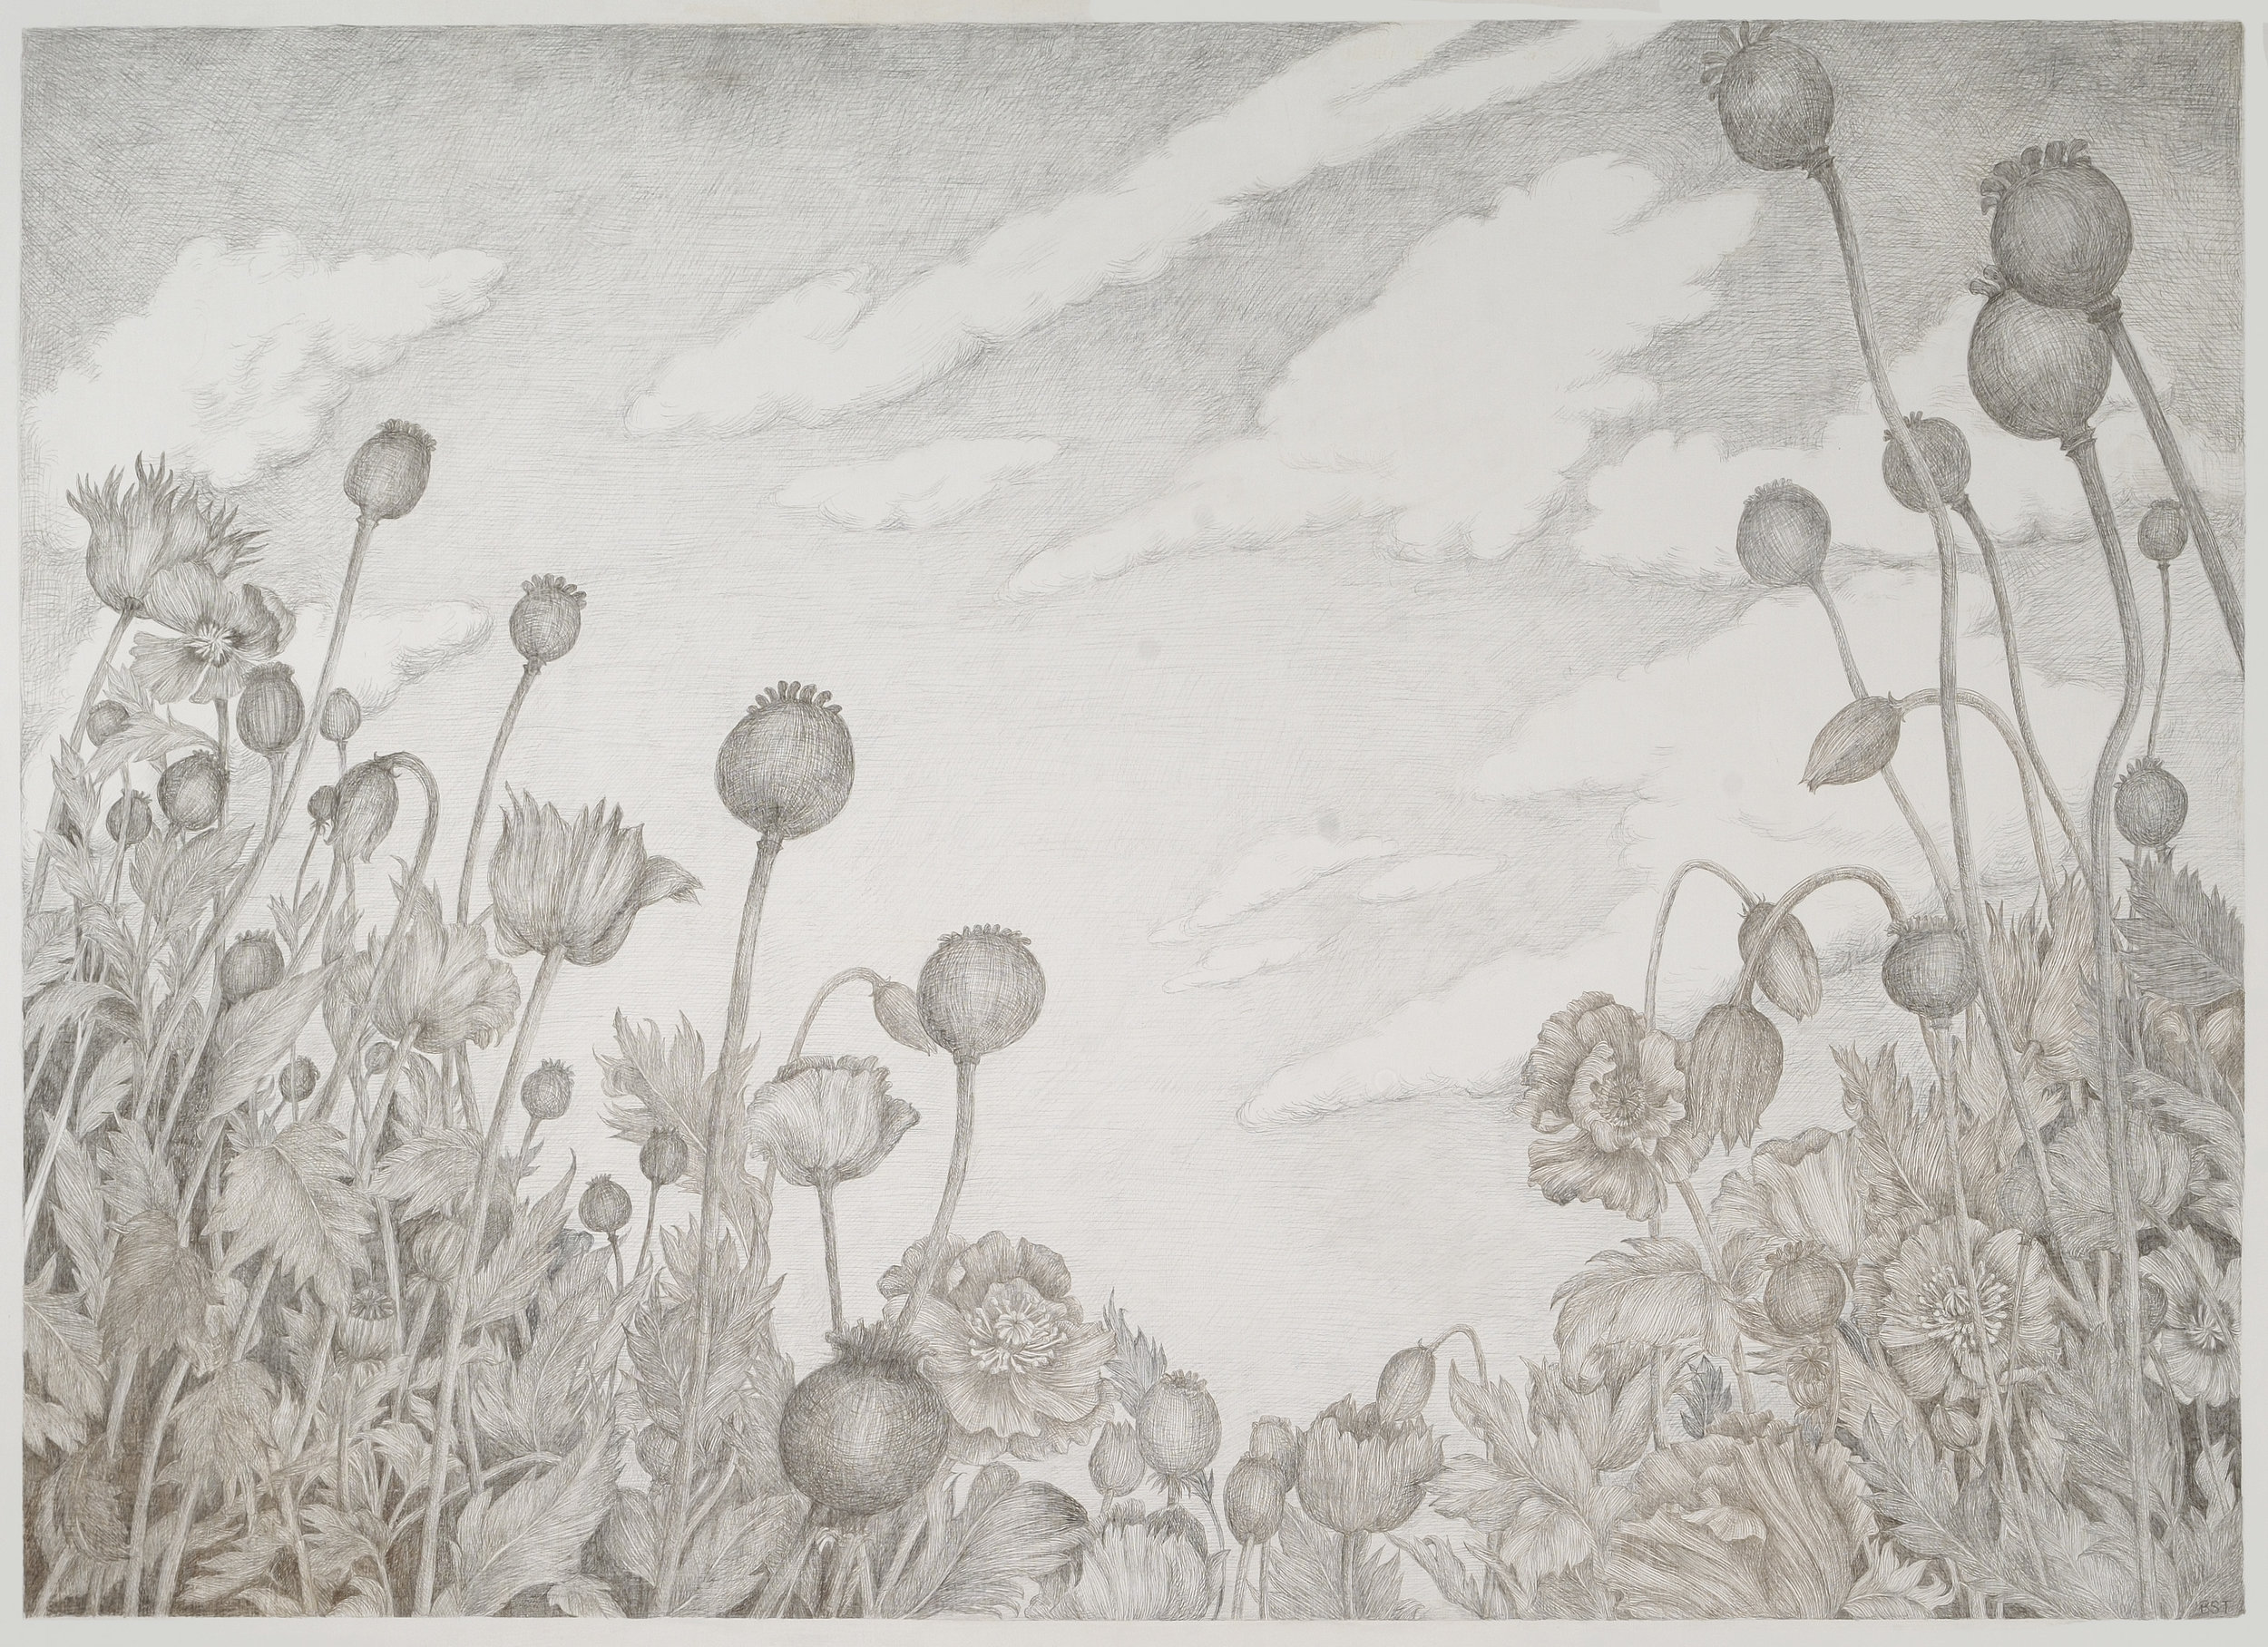 Poppies, 2014, silverpoint on paper, 27 x 30 in, $3,500